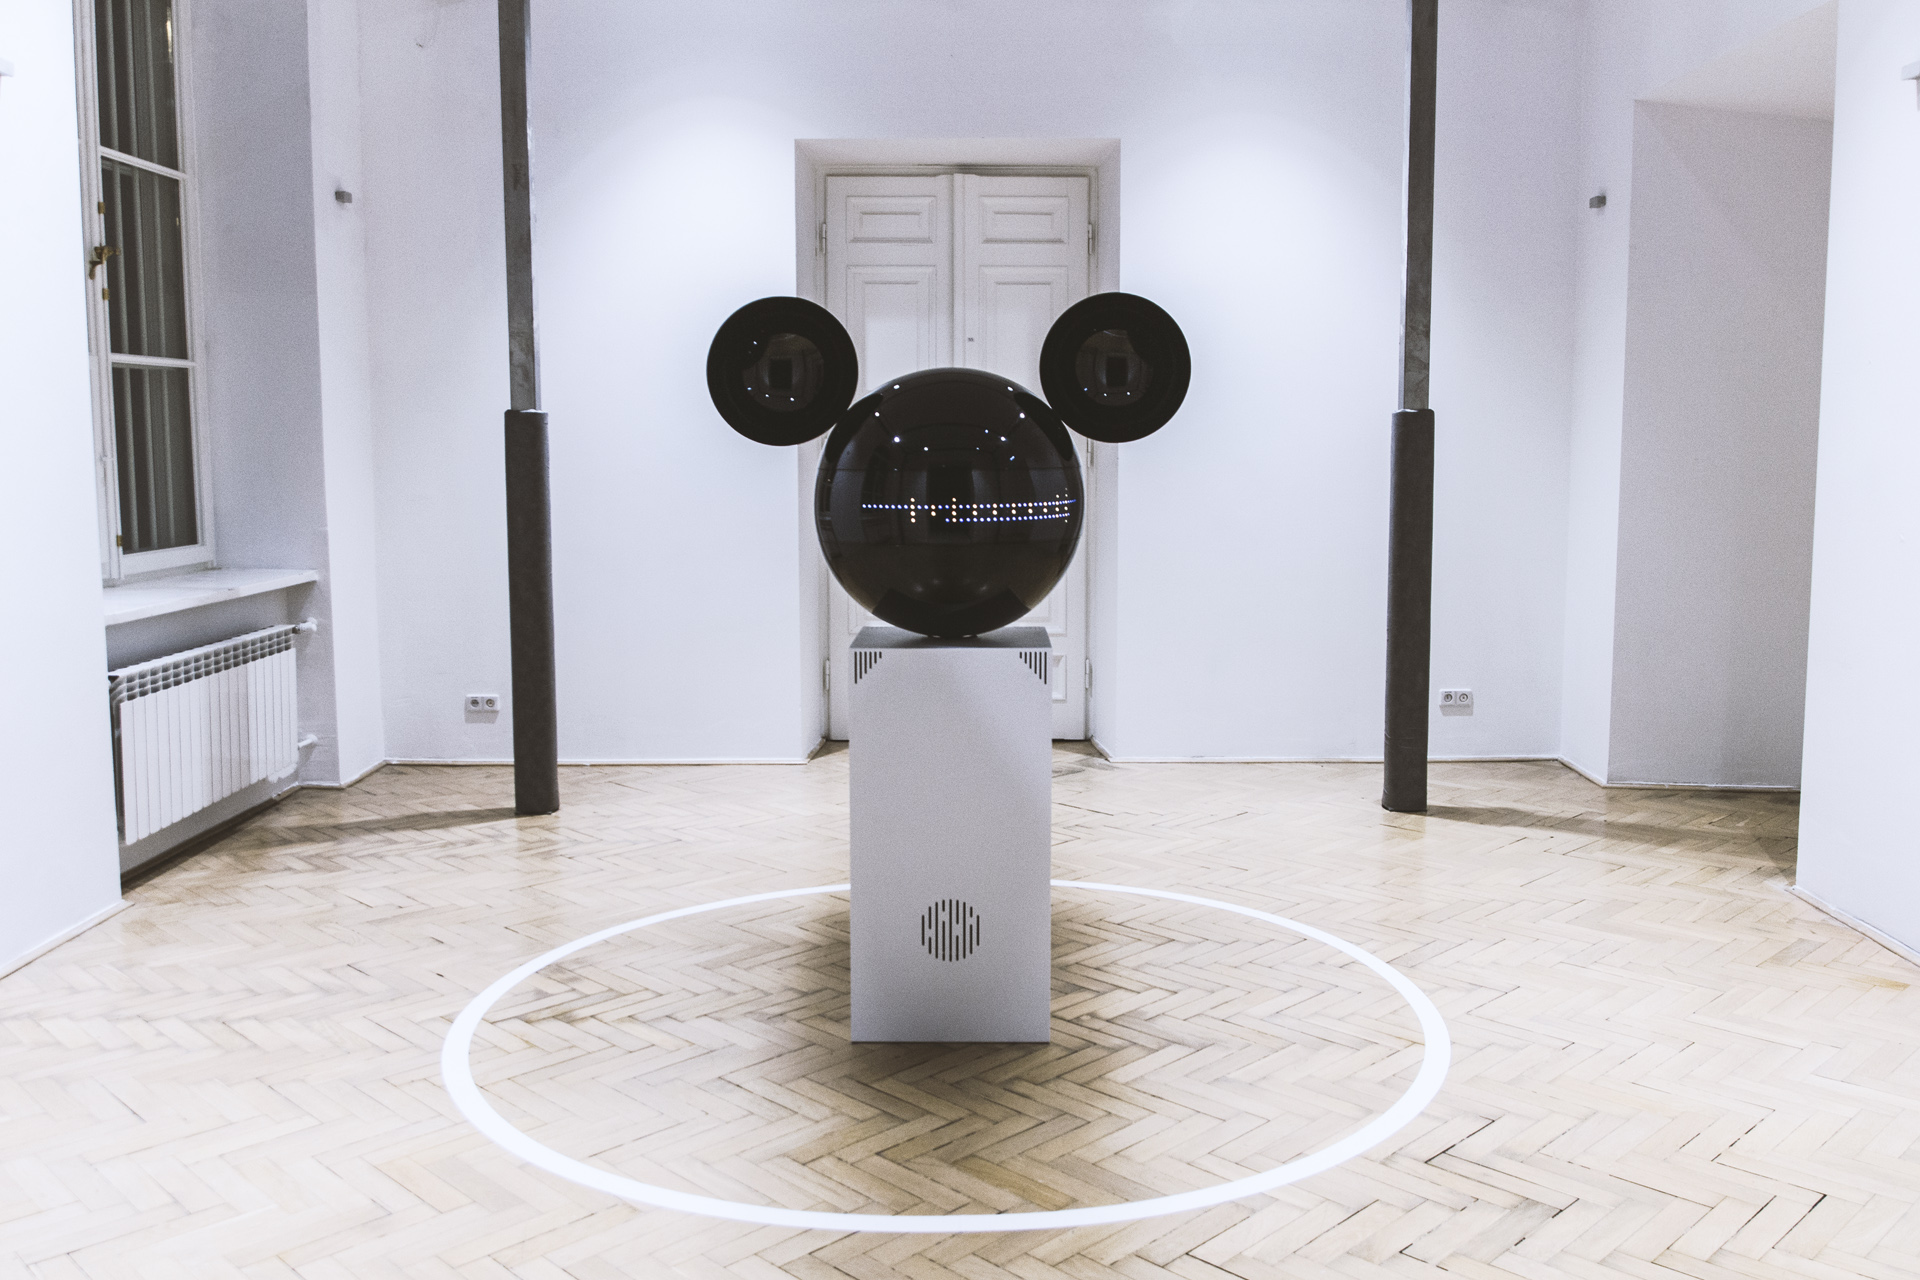 Disney and Warsaw design group bring Mickey Mouse to life in interactive installation